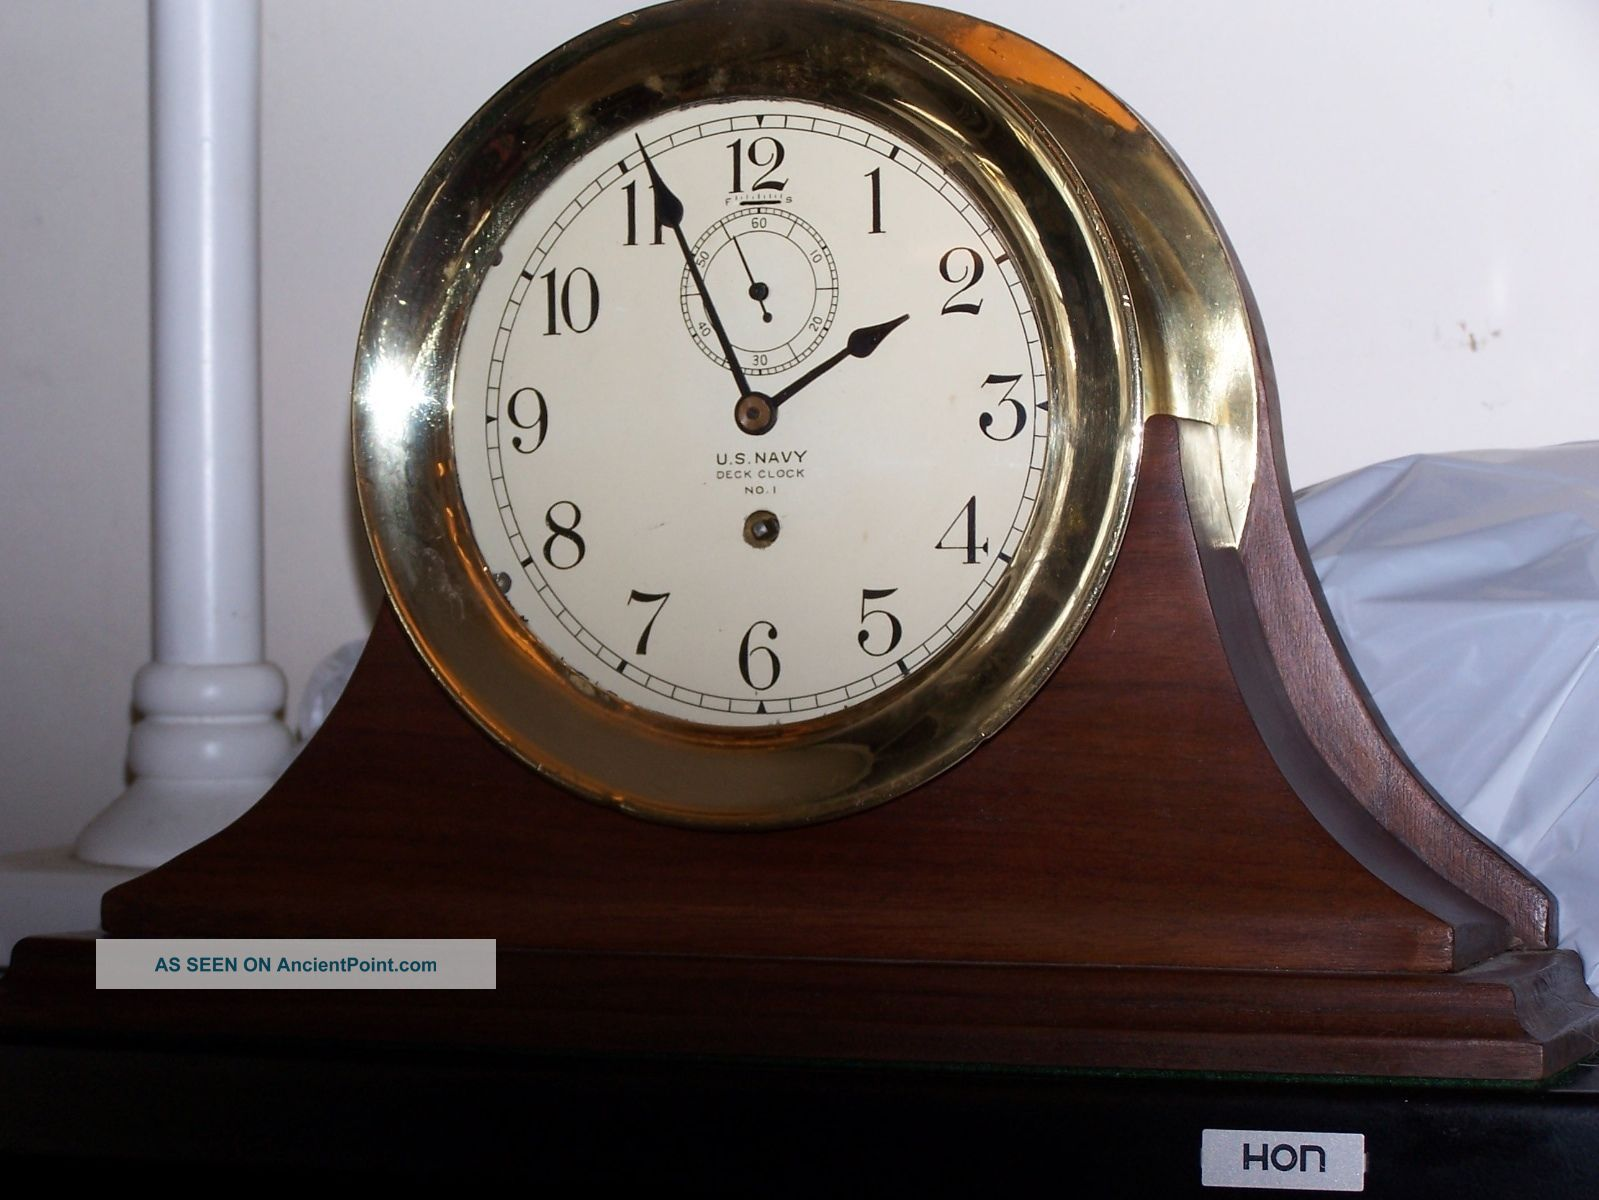 Waltham Us Navy Ship Clock With Two 6 Inch Dials And Wood Chelsea Type Stand Clocks photo